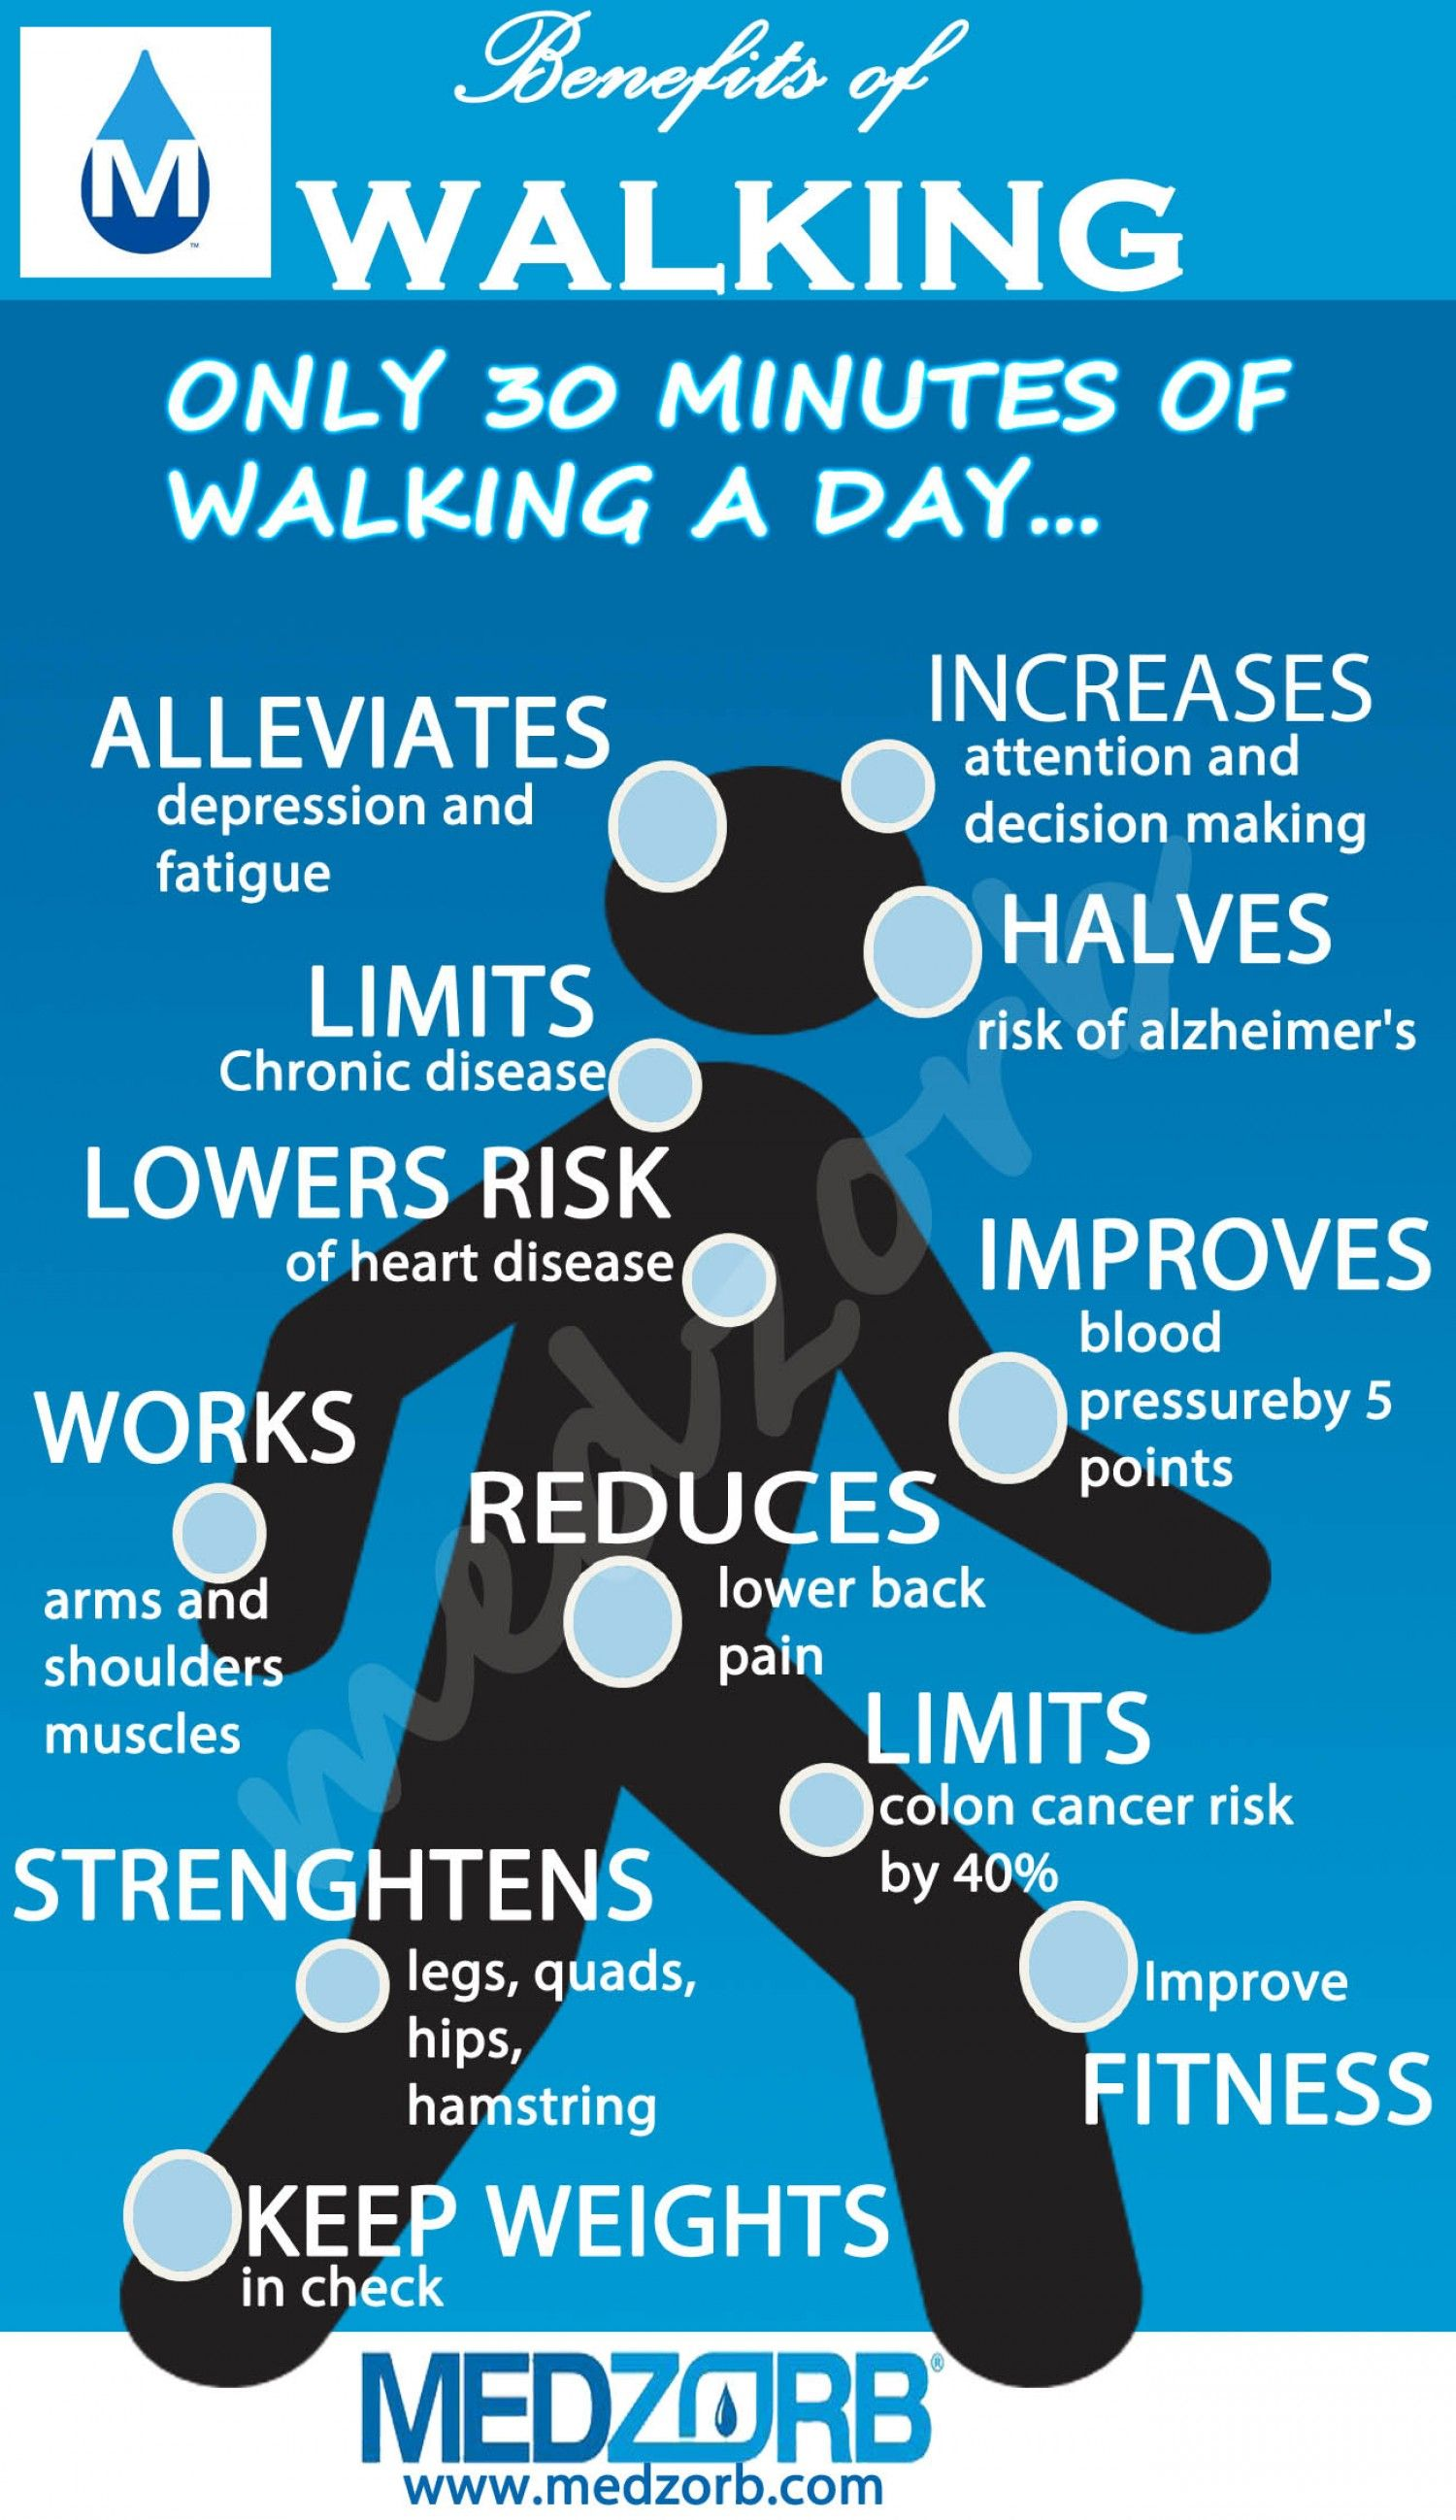 The Benefits of Walking --shared by zorbymedzorb on Oct 02 ...